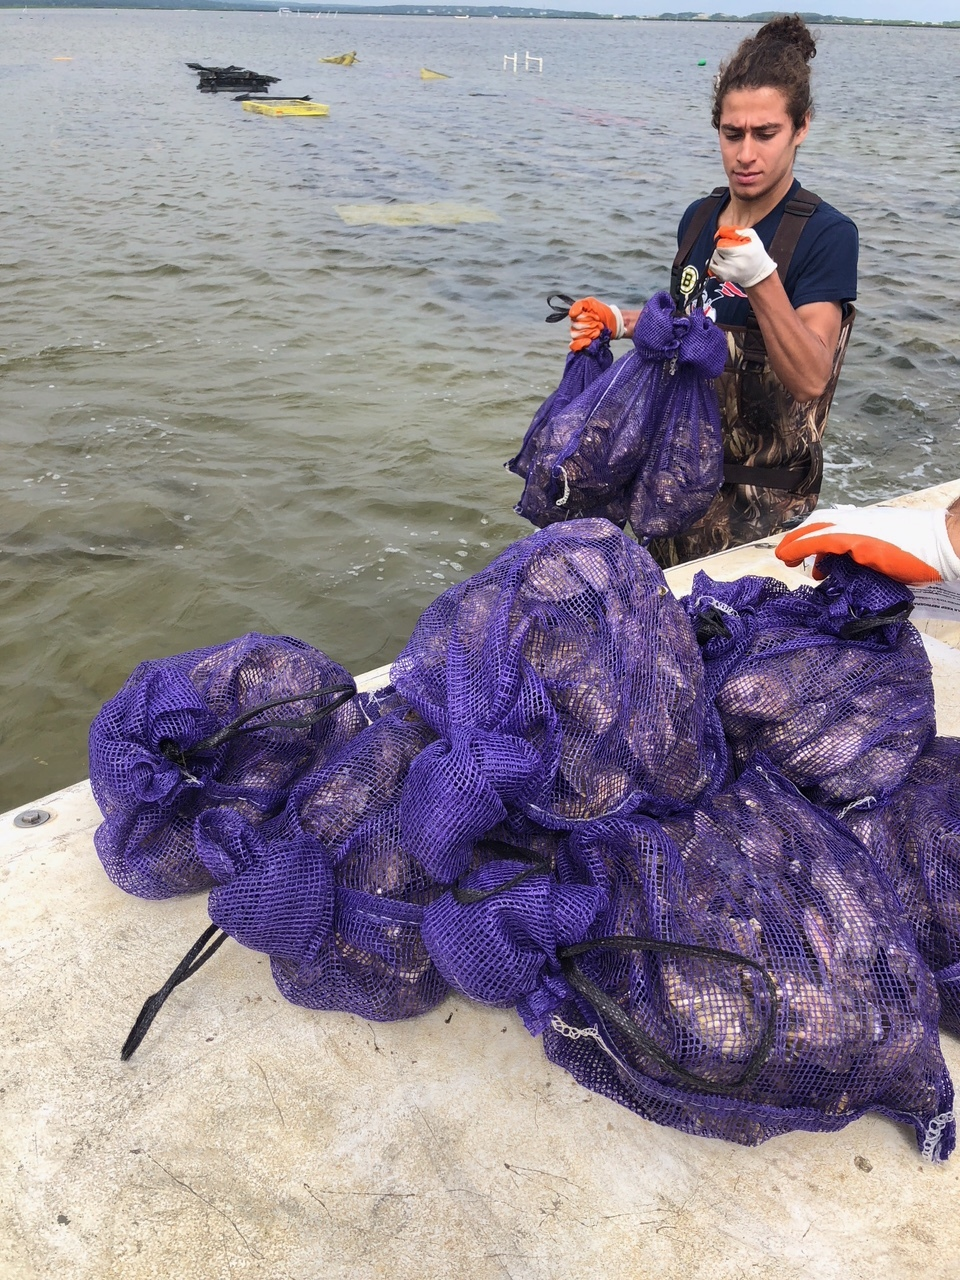 Nathan Mills Interning at Oyster Grant in Barnstable Harbor